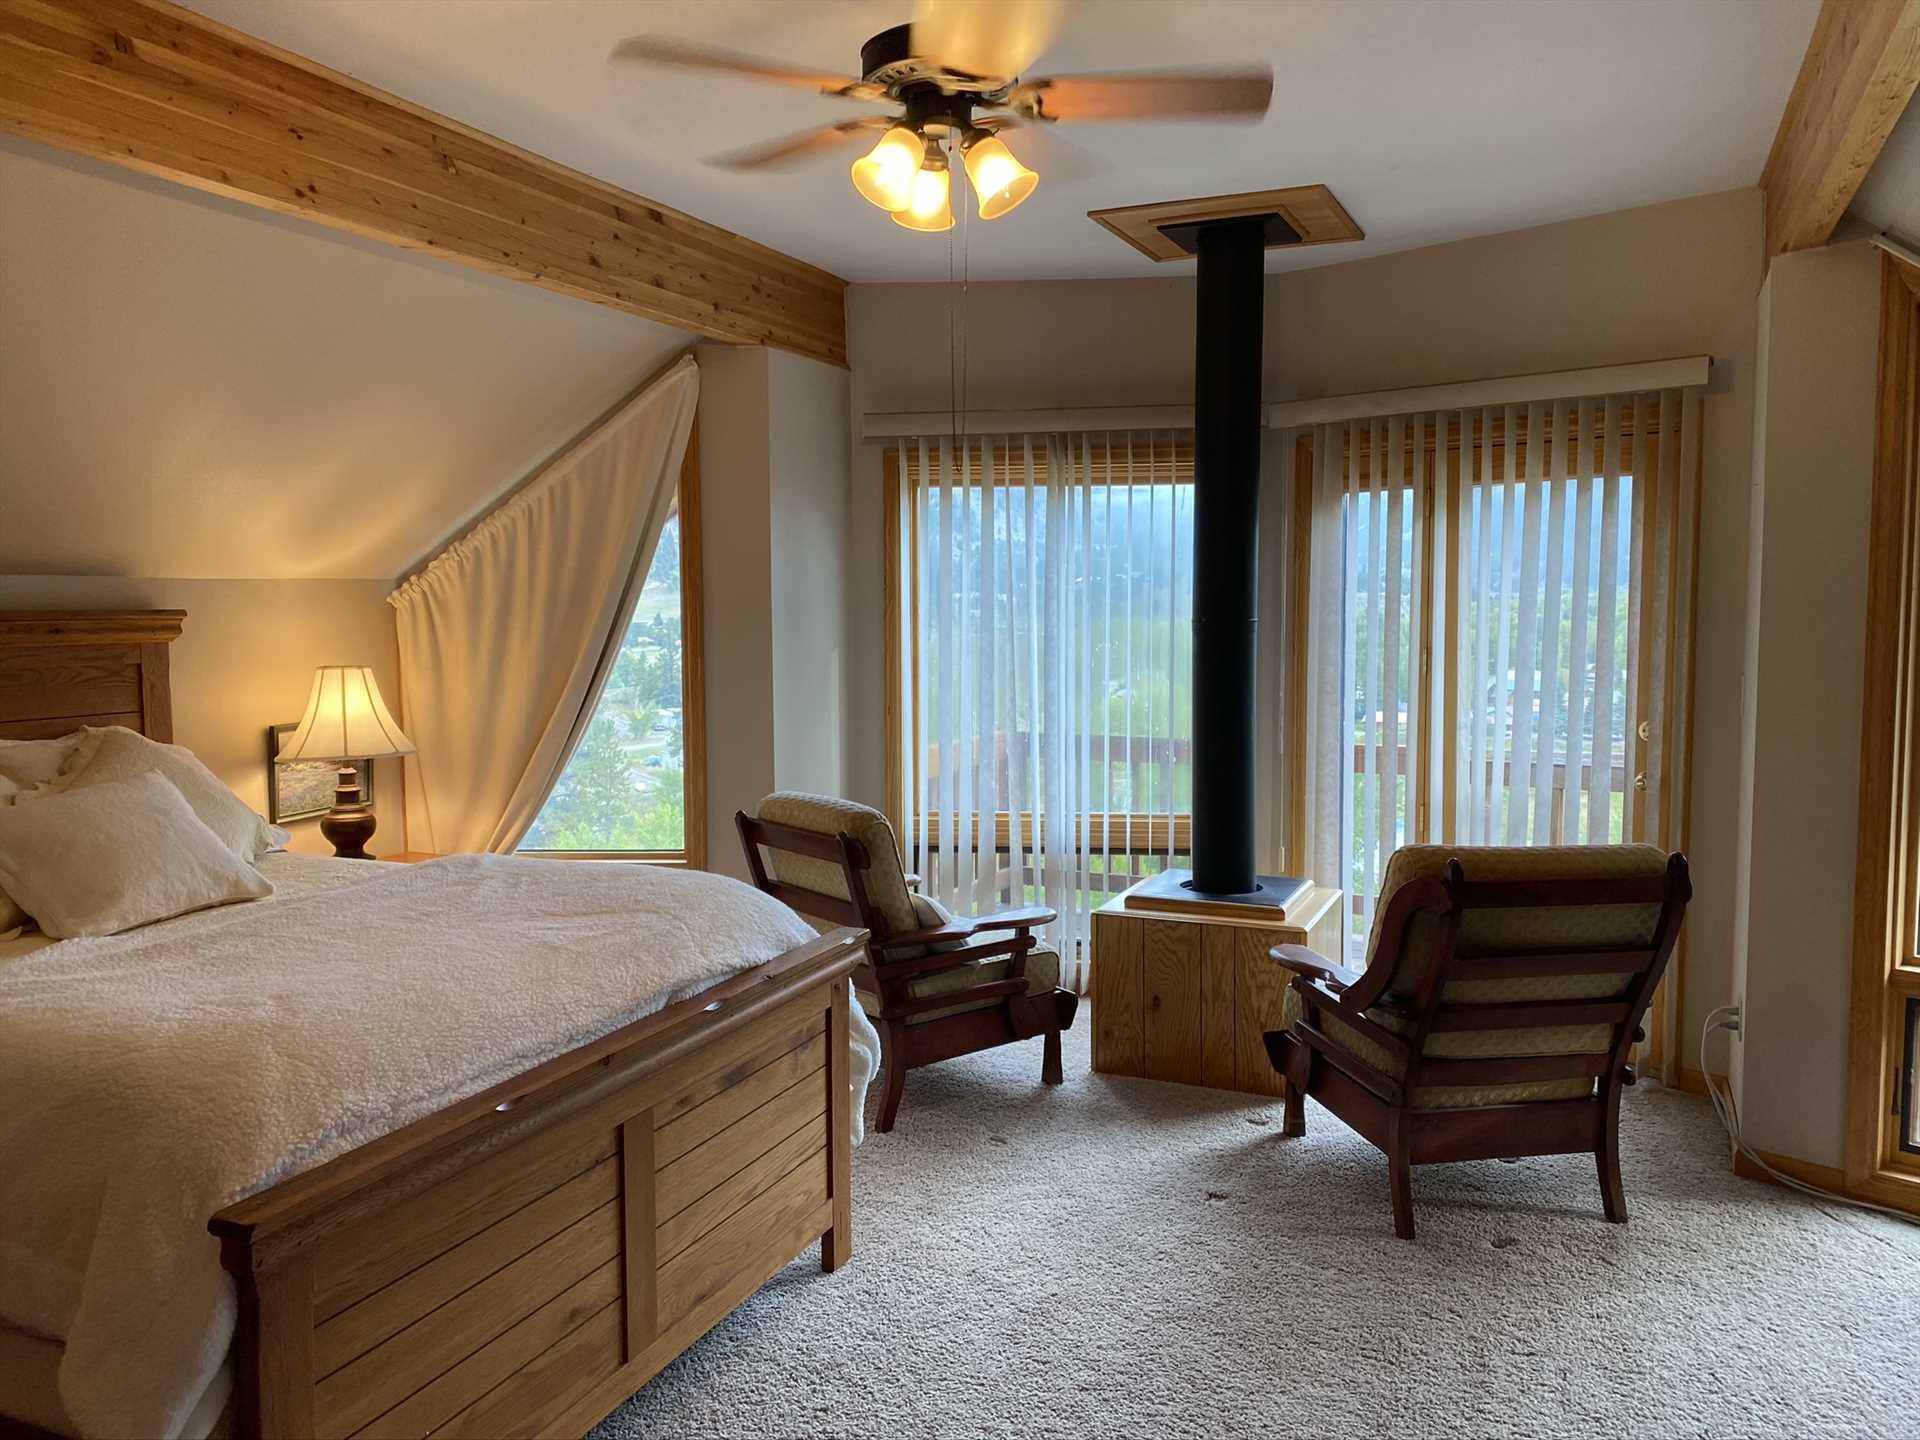 Sitting Area in Master Bedroom with Views of the Valley